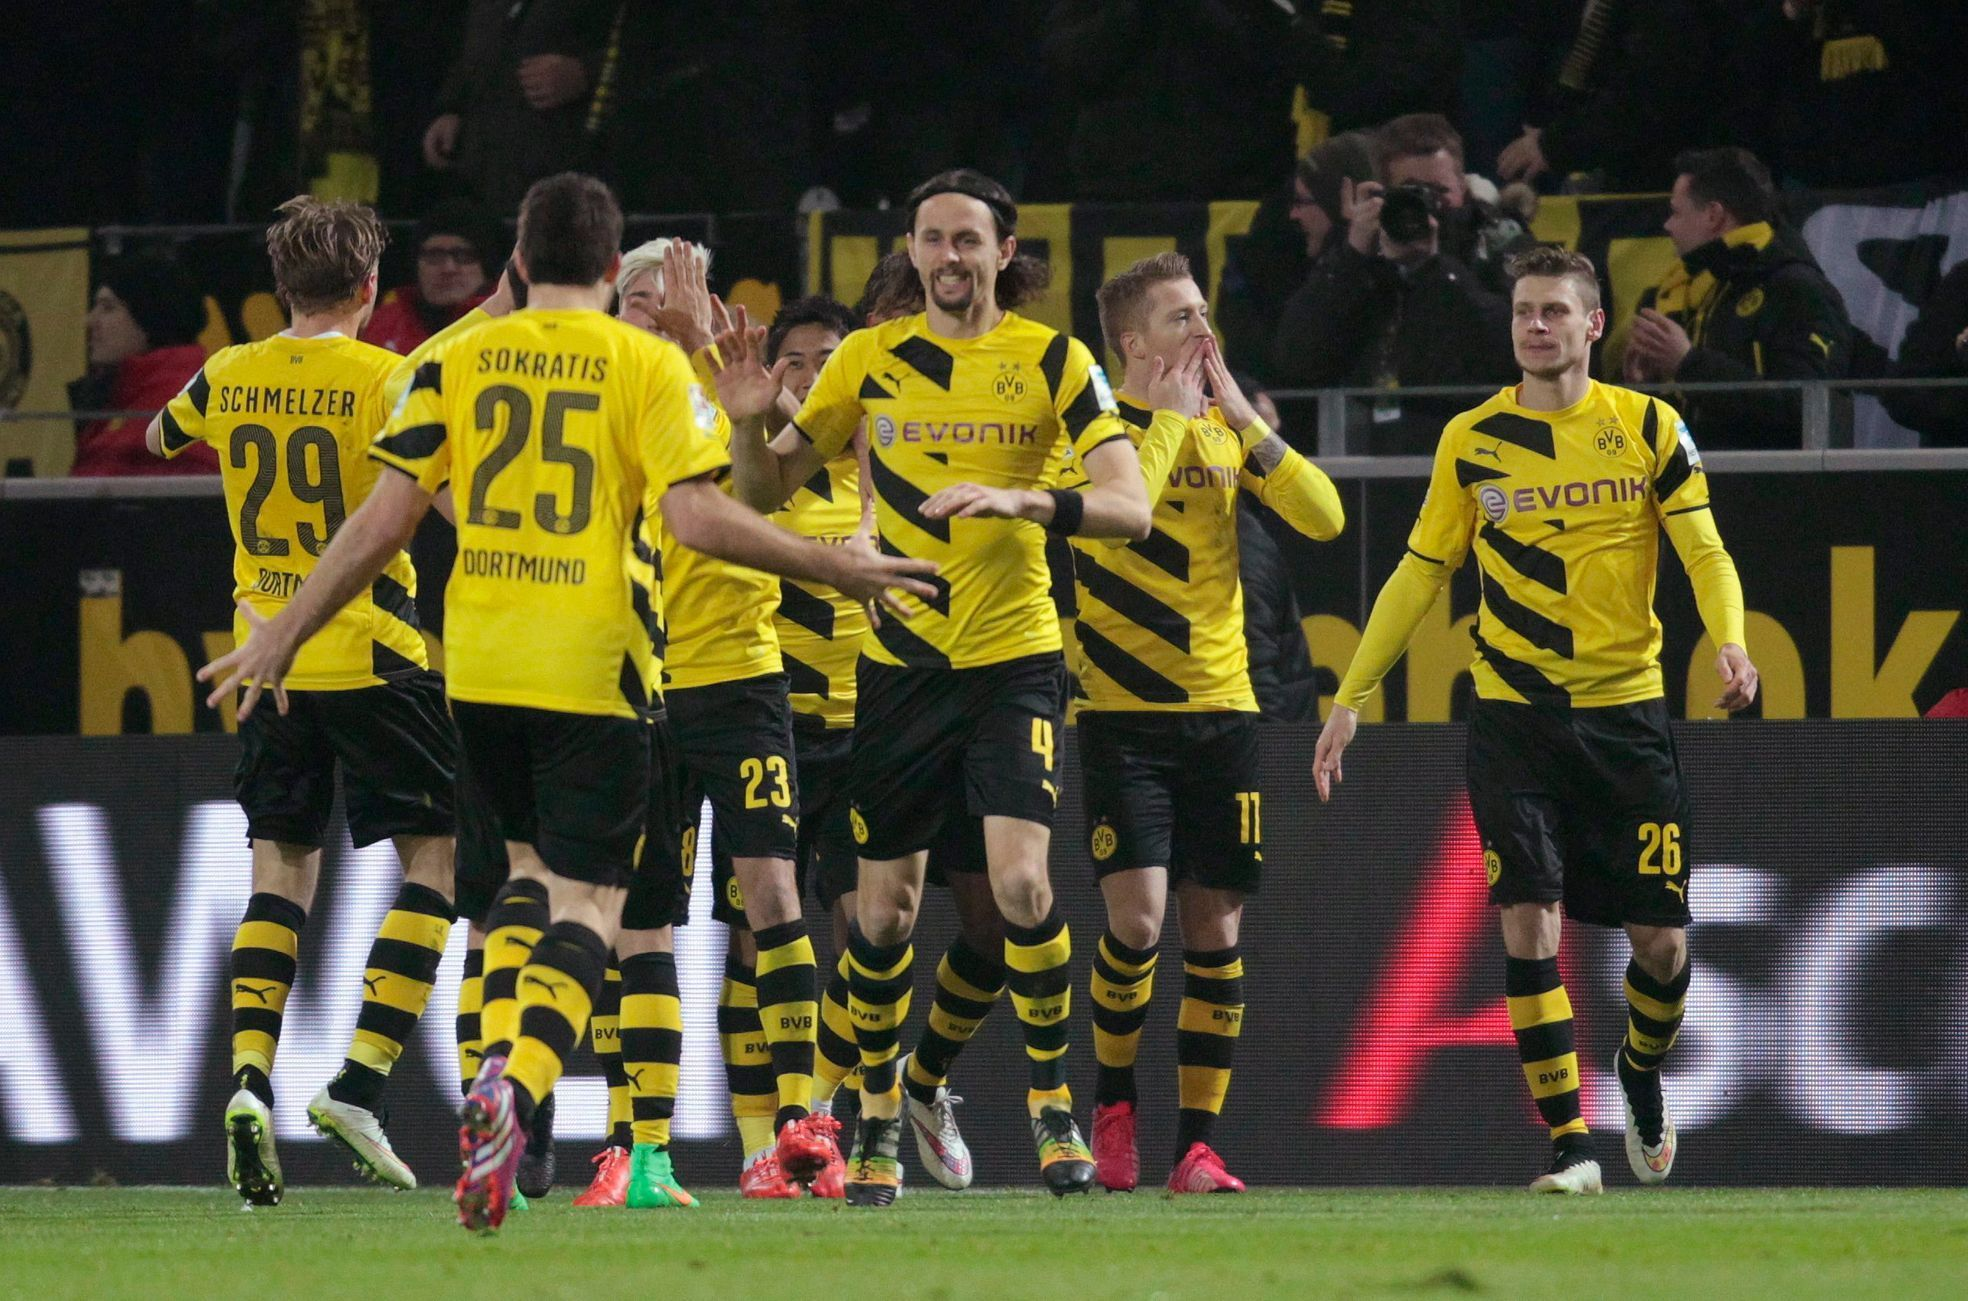 Borussia Dortmund's players celebrate a goal against Mainz 05 during their Bundesliga first division soccer match in Dortmund